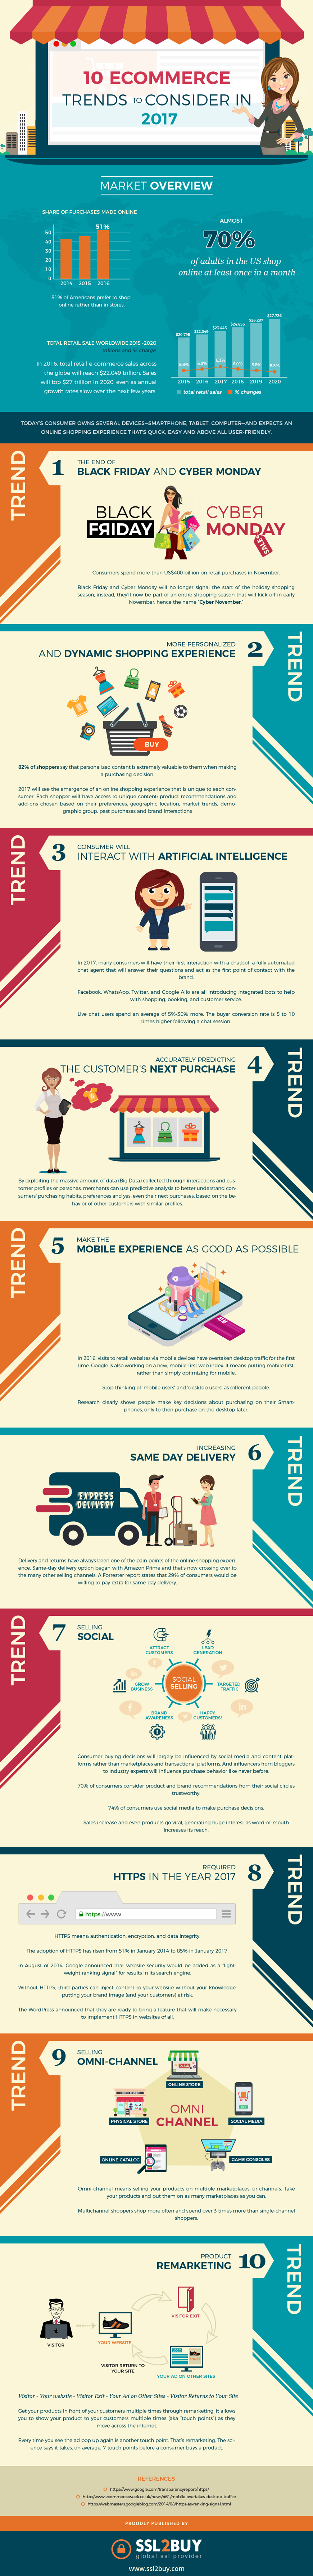 10 Ecommerce Trends to Consider In 2017 #Infographic